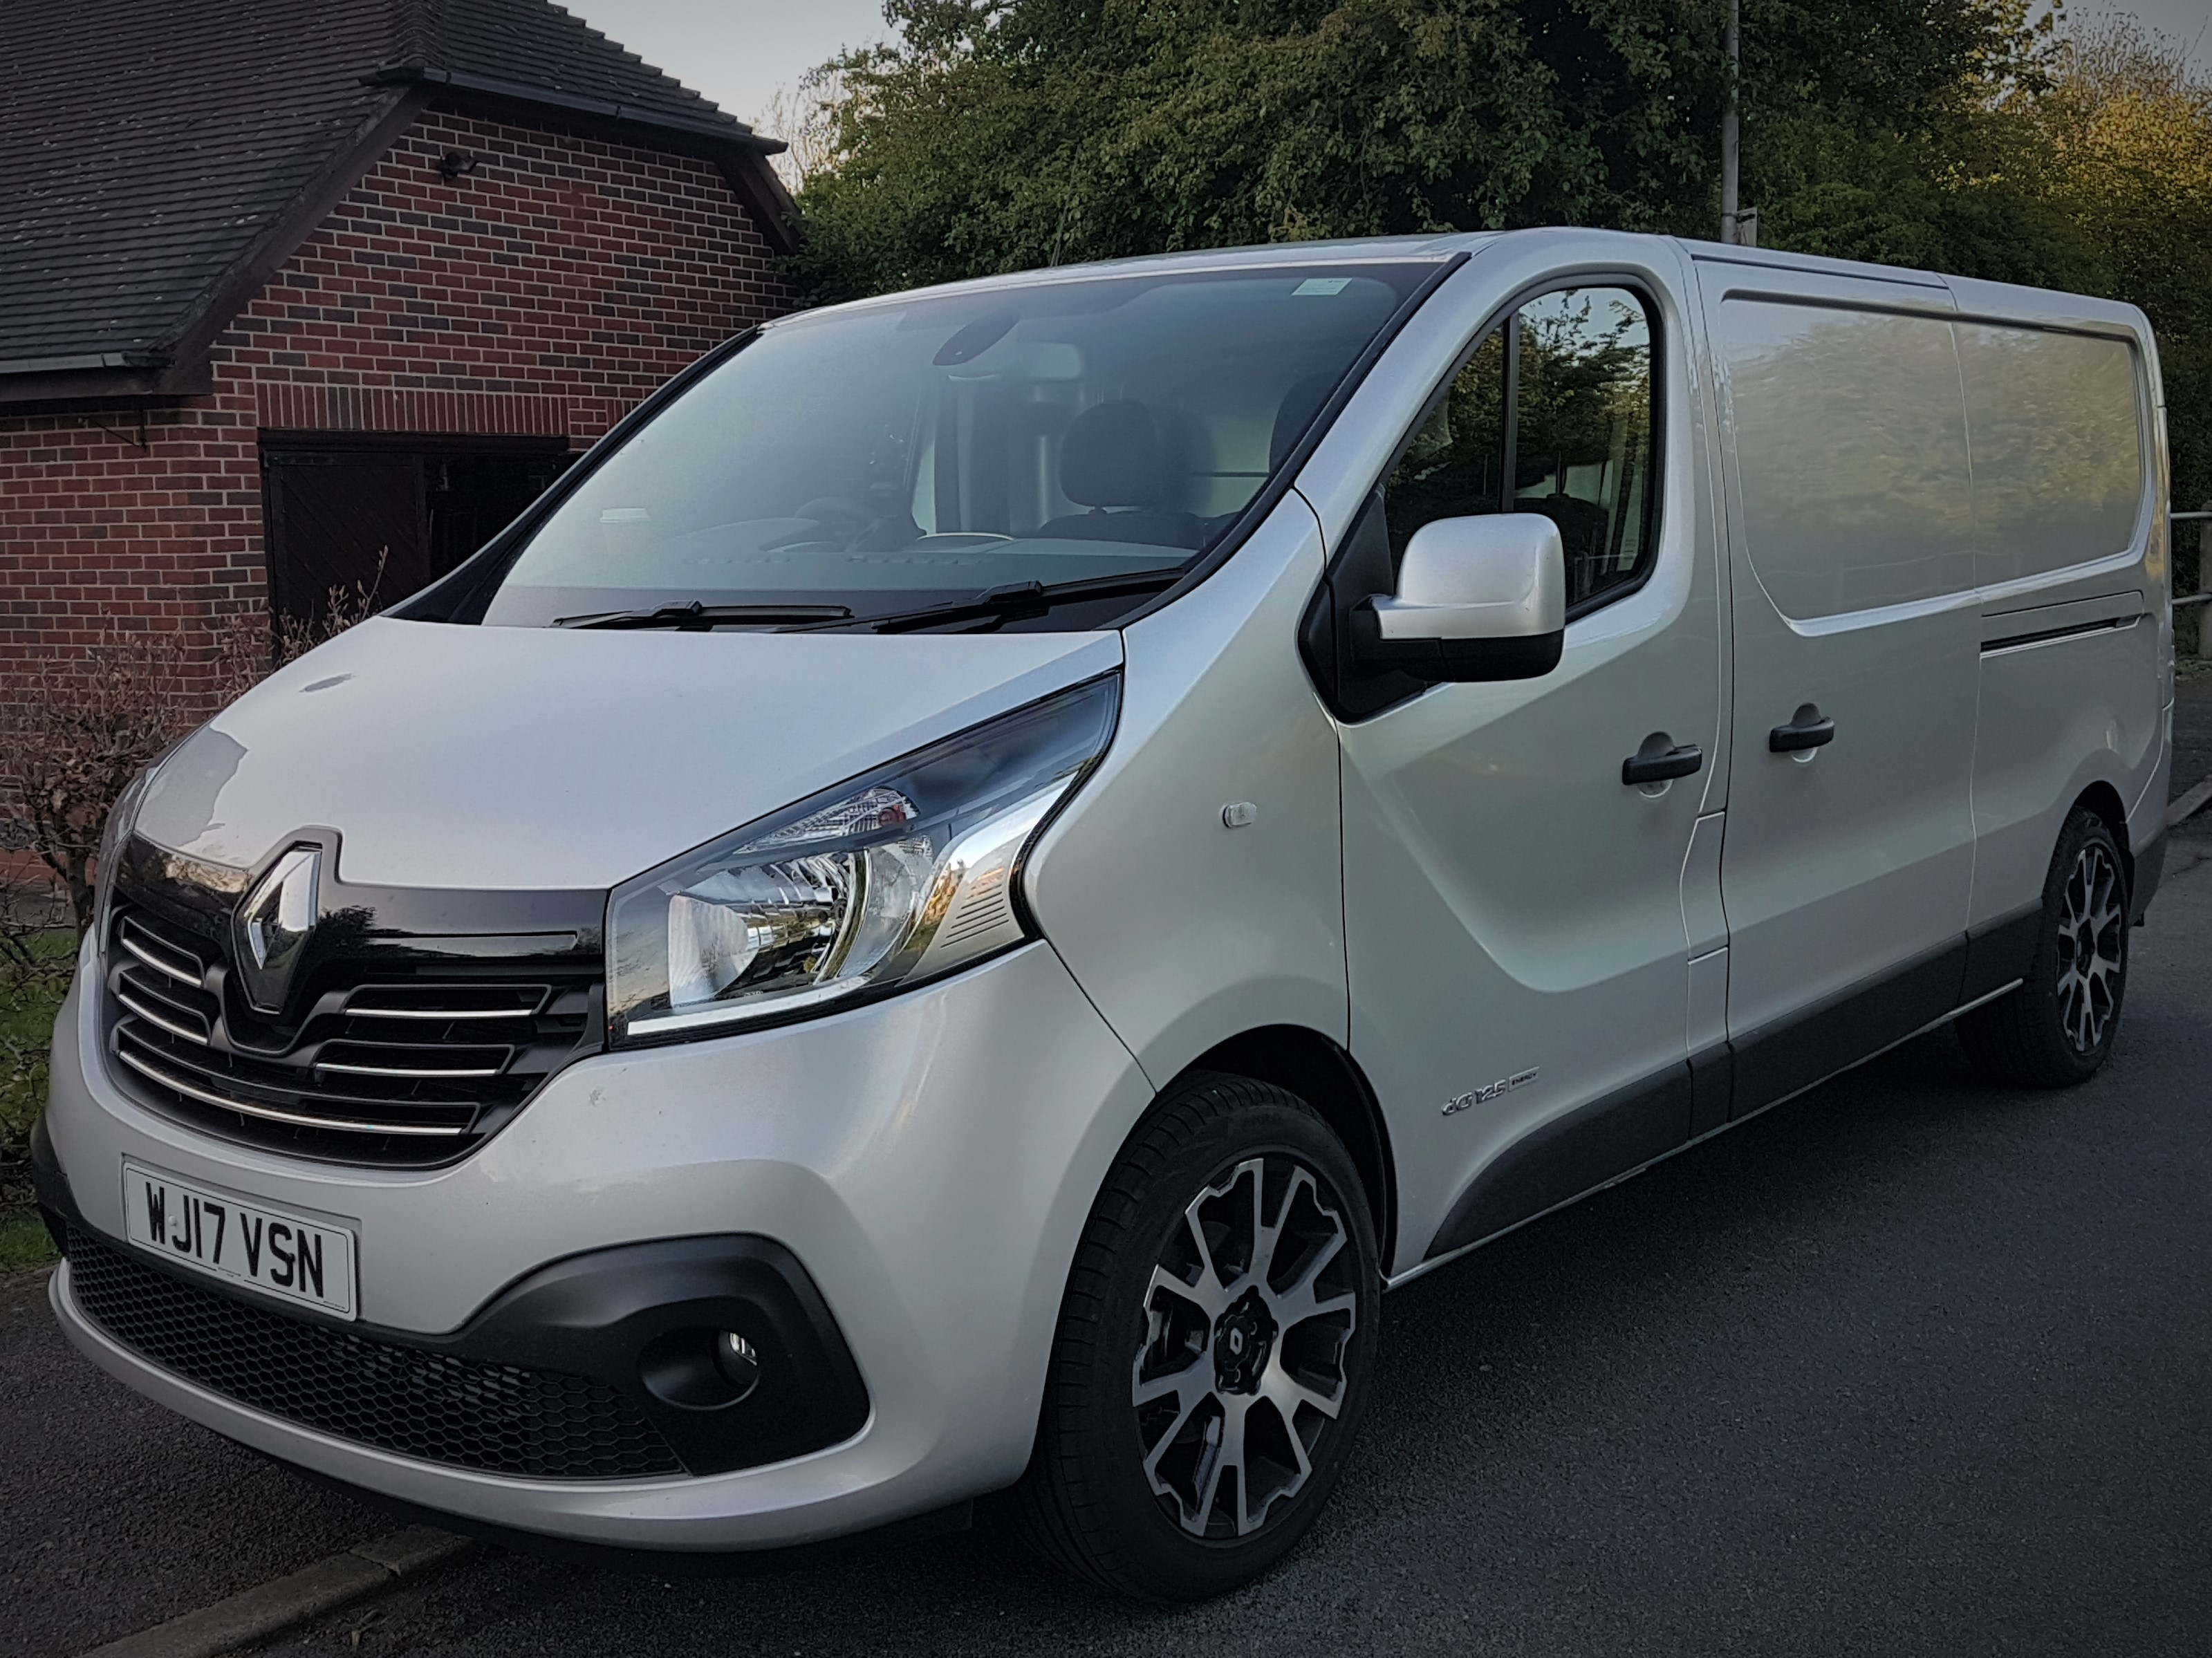 renault trafic sport fully fitted out window cleaning van package clean machine. Black Bedroom Furniture Sets. Home Design Ideas